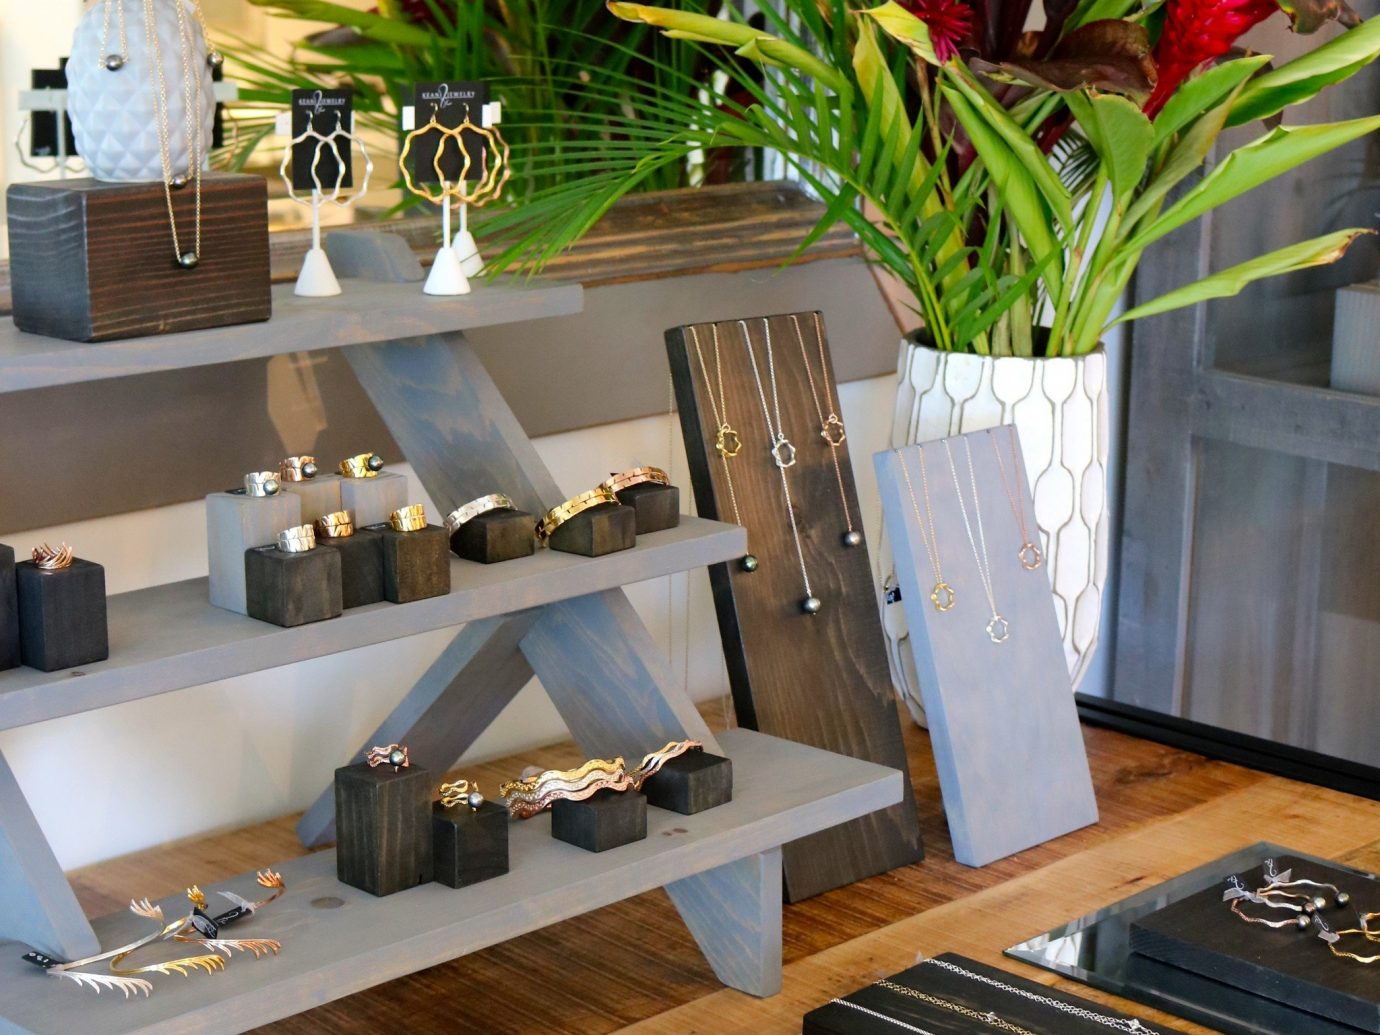 Trip Ideas indoor table wall plant furniture interior design houseplant living room cluttered